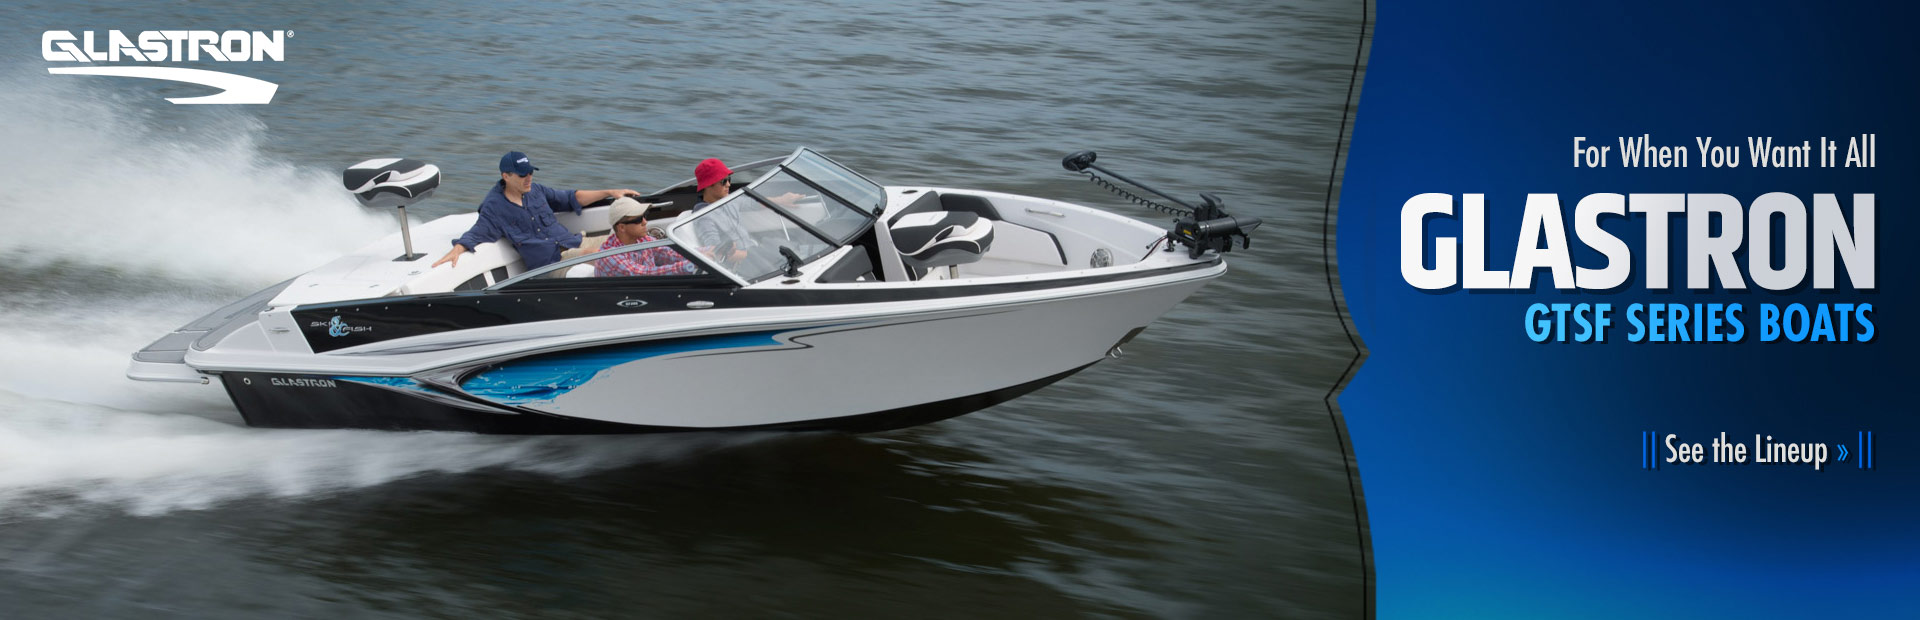 Click here to see our lineup of Glastron GTSF series boats!